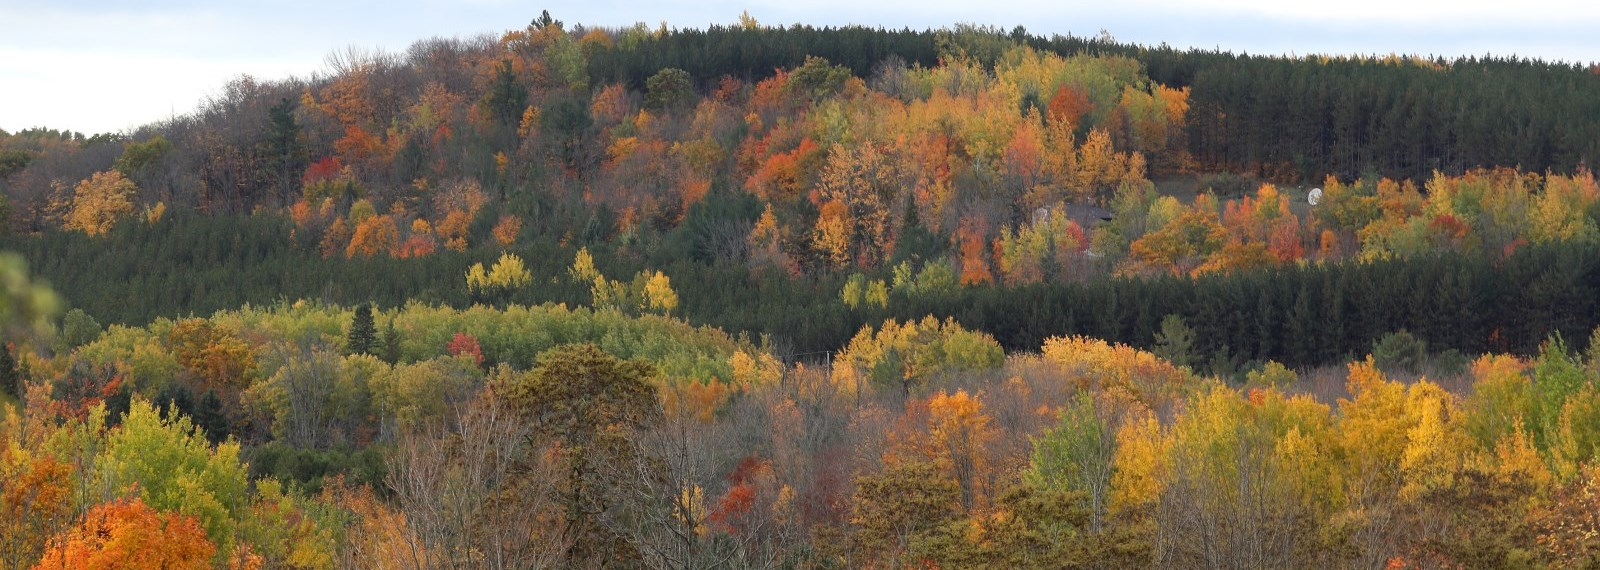 trees changing colours in the Fall